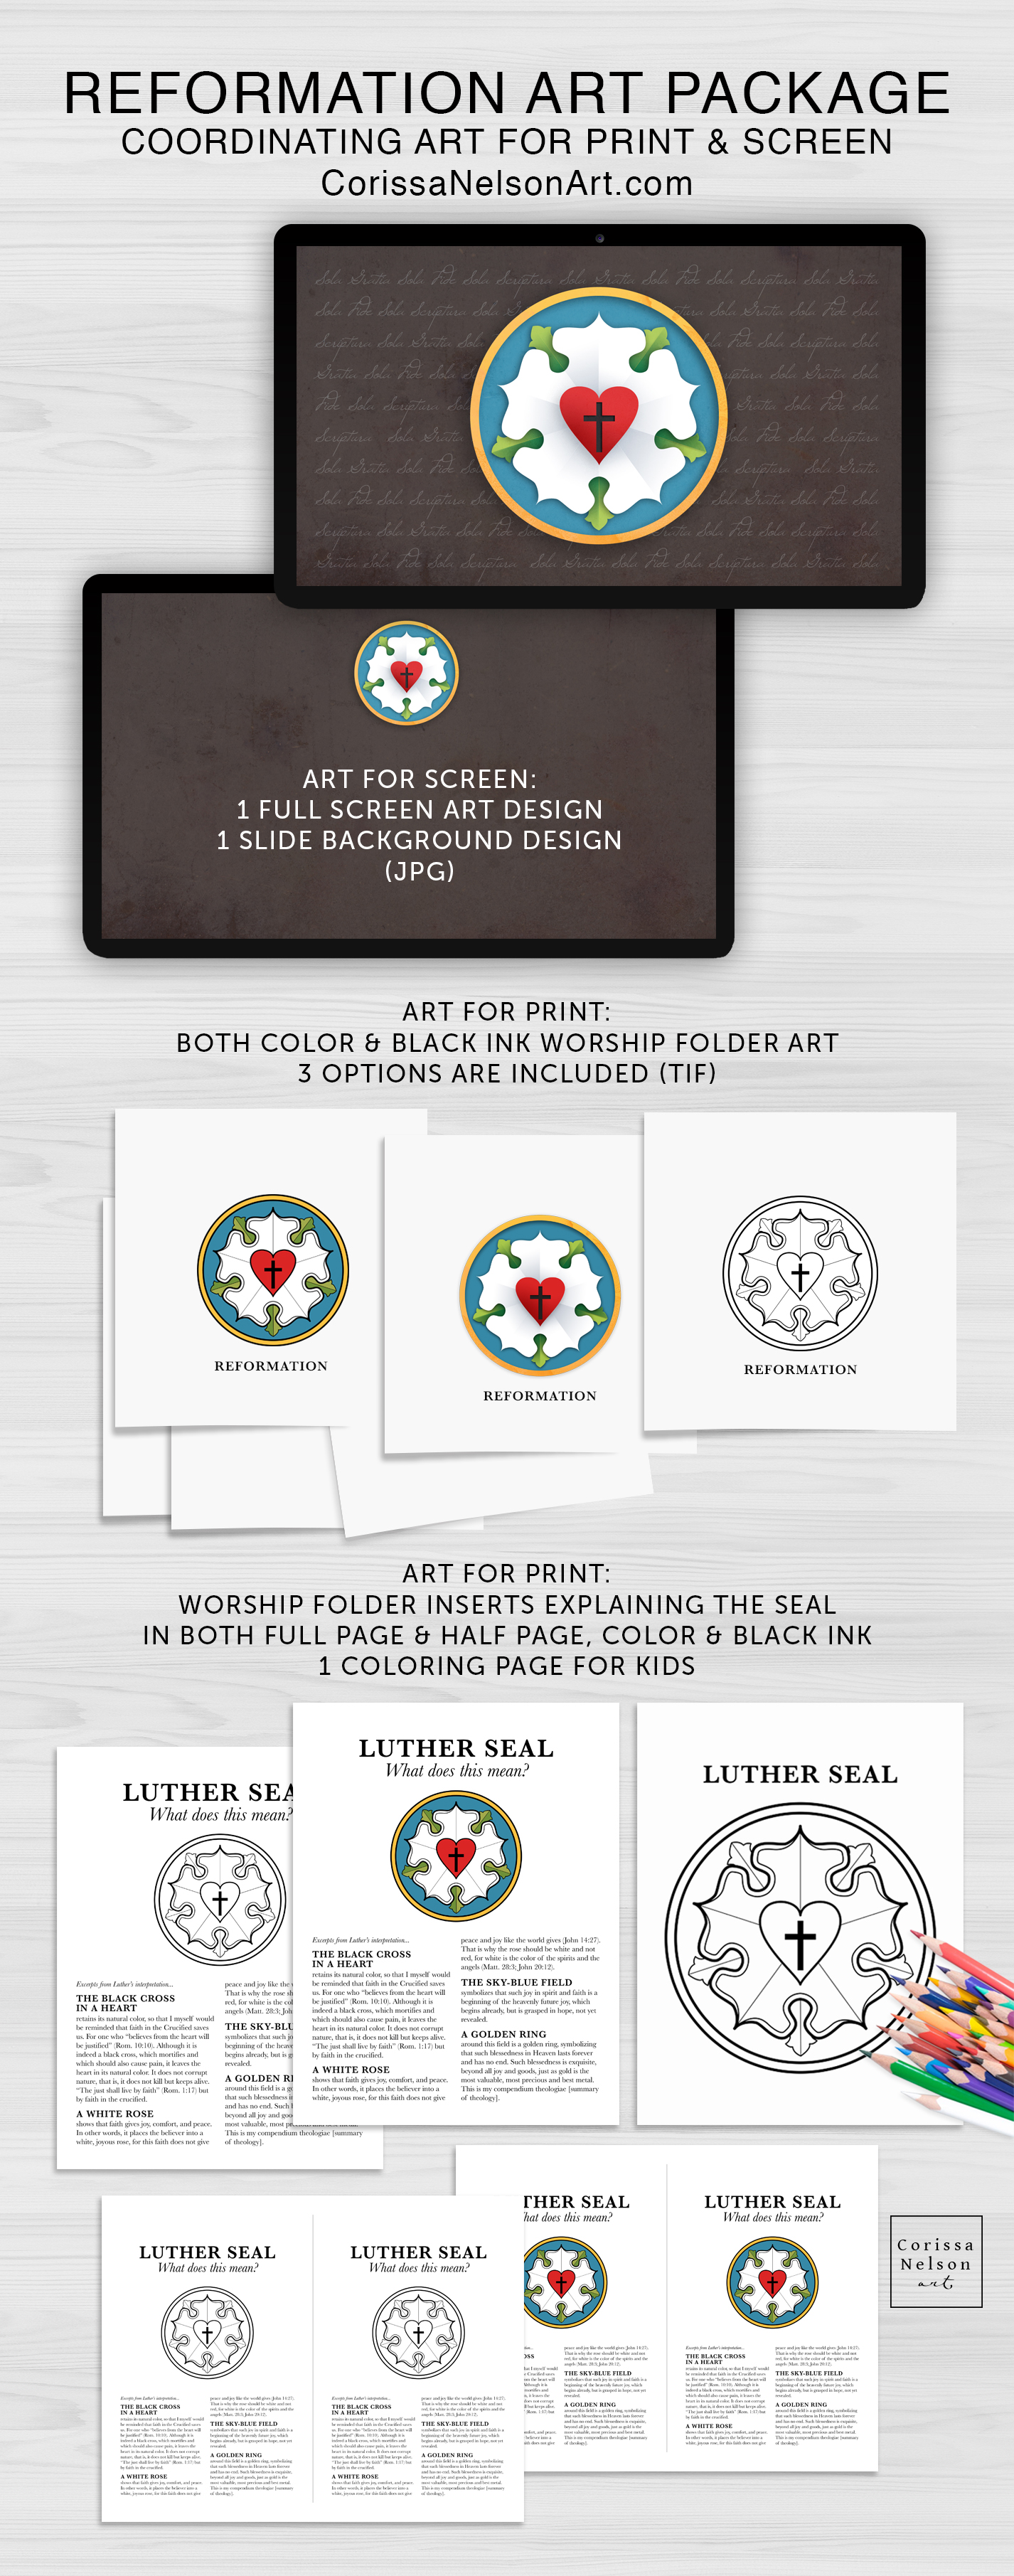 photograph regarding Martin Luther Seal Printable referred to as Reformation Artwork Package deal Corissa Nelson